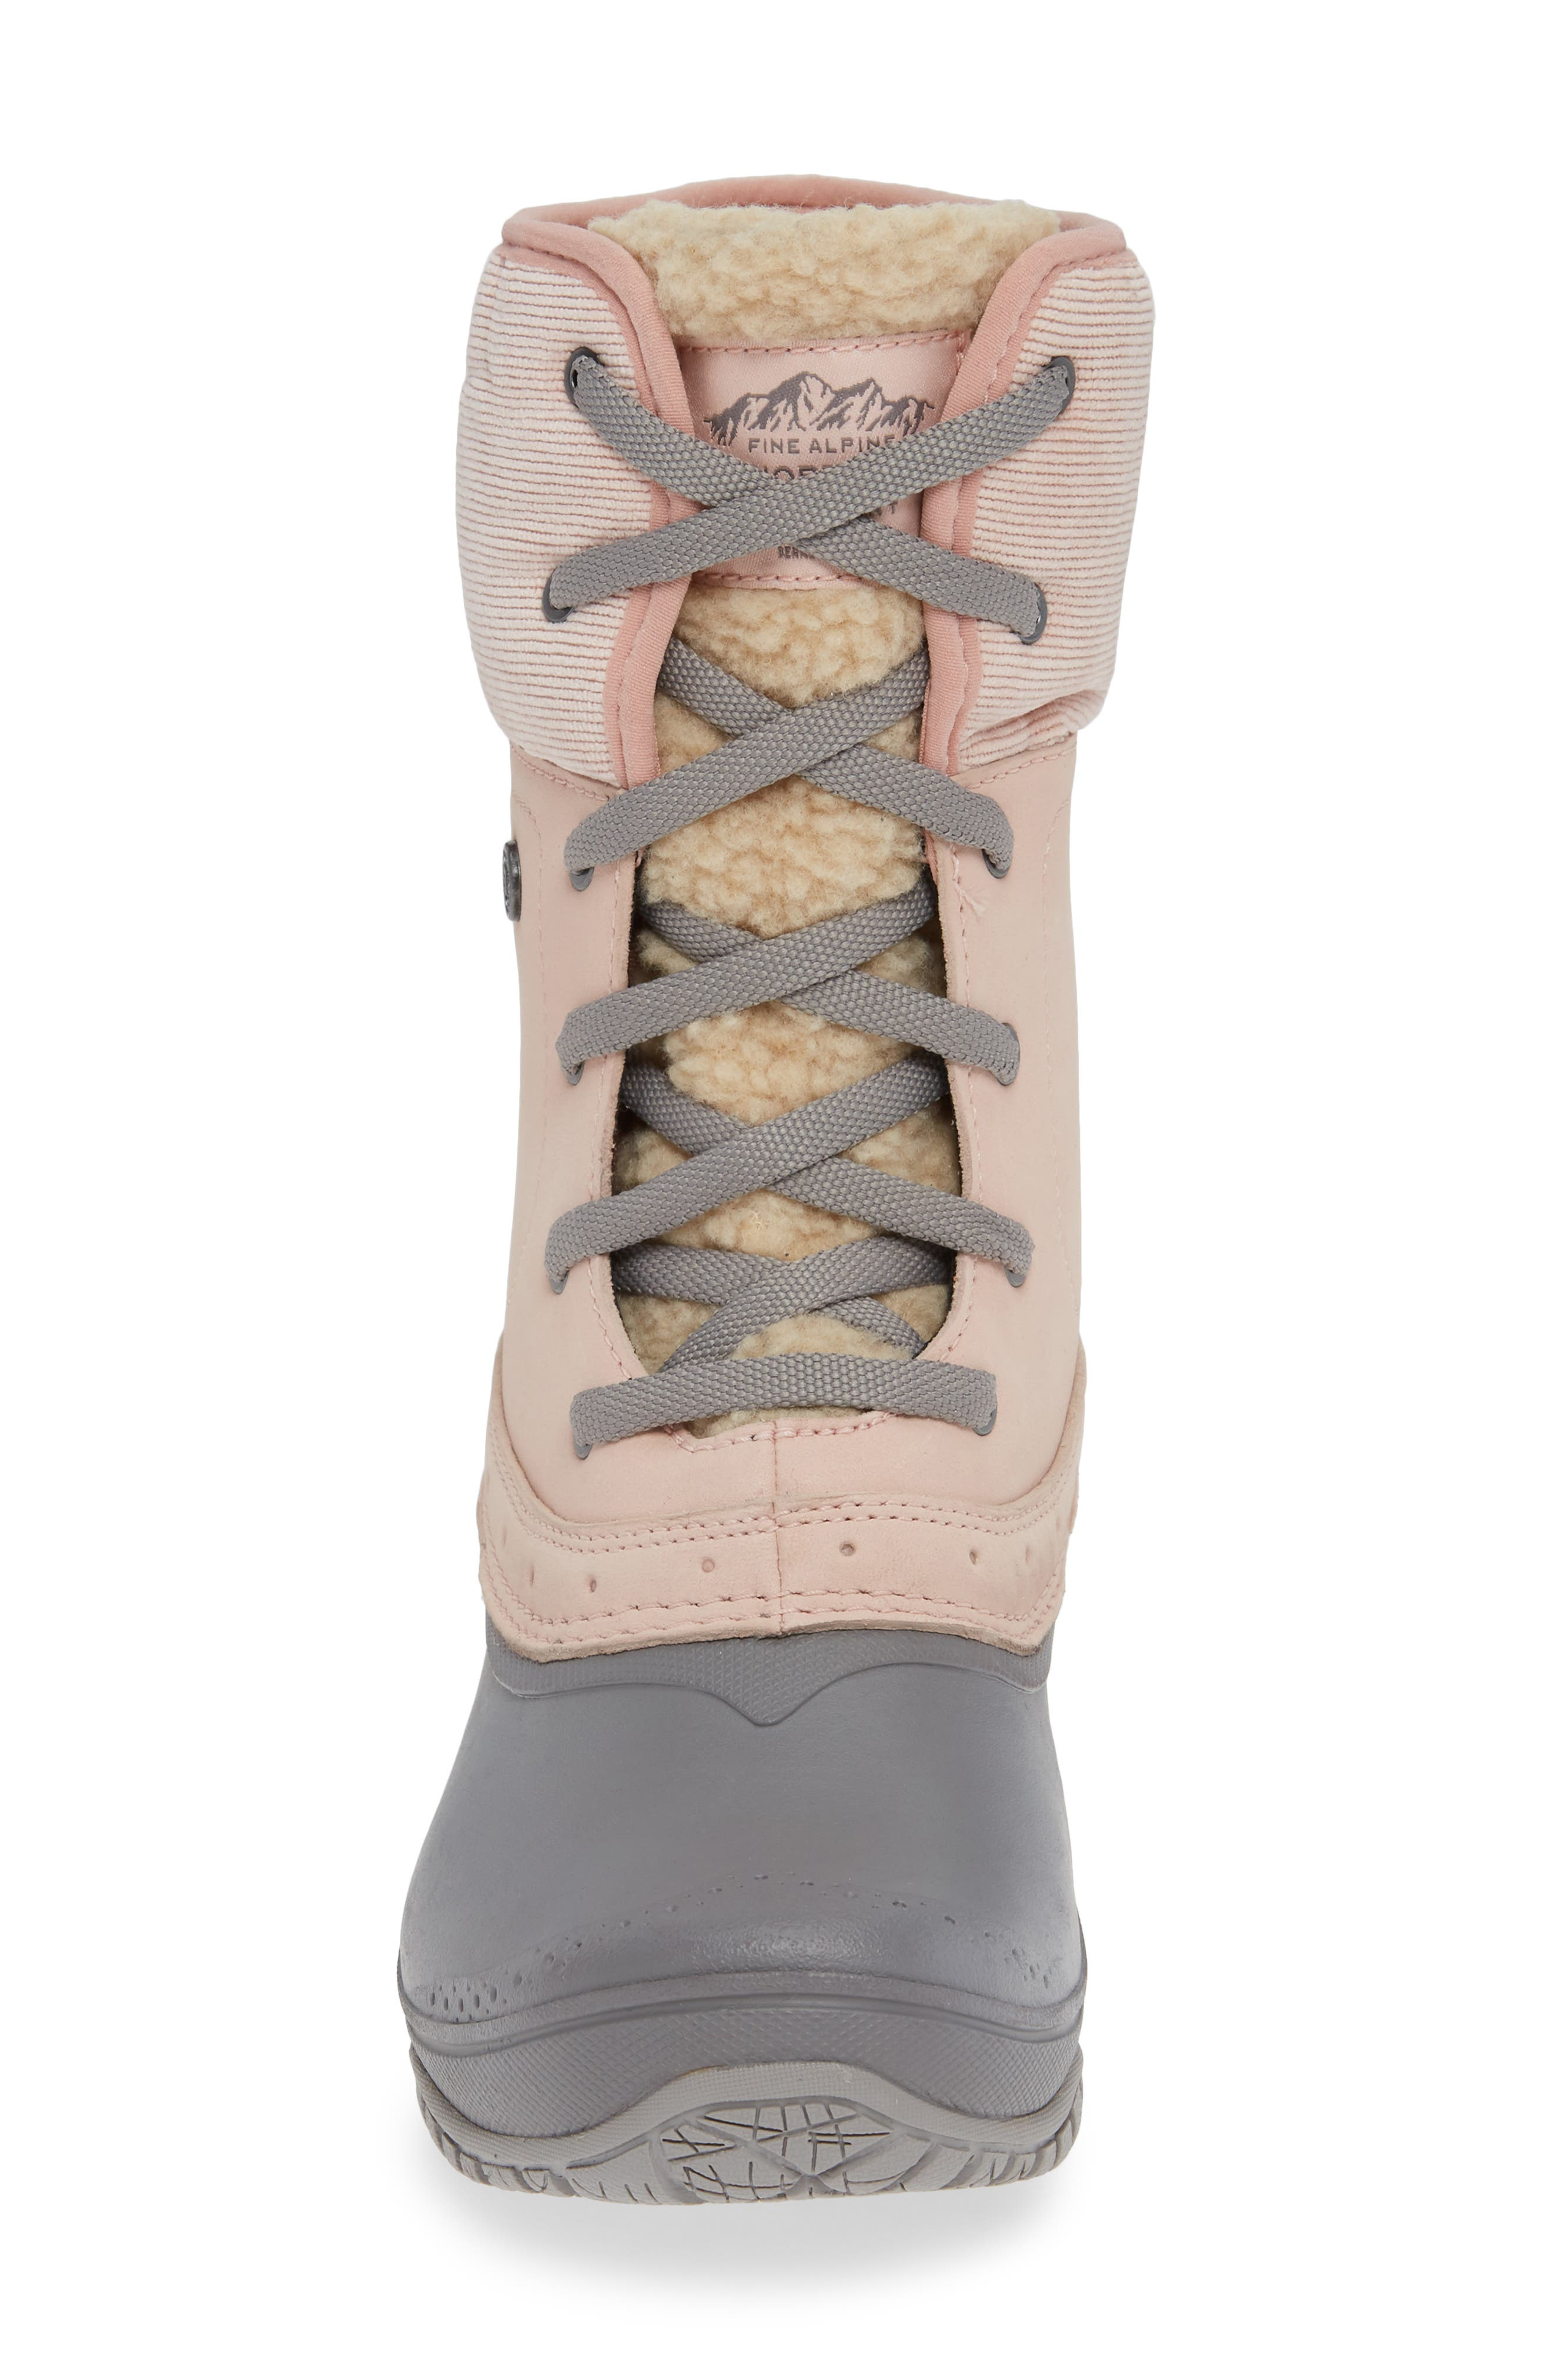 Shellista Roll Cuff Waterproof Insulated Winter Boot,                             Alternate thumbnail 4, color,                             MISTY ROSE/ Q-SILVER GREY